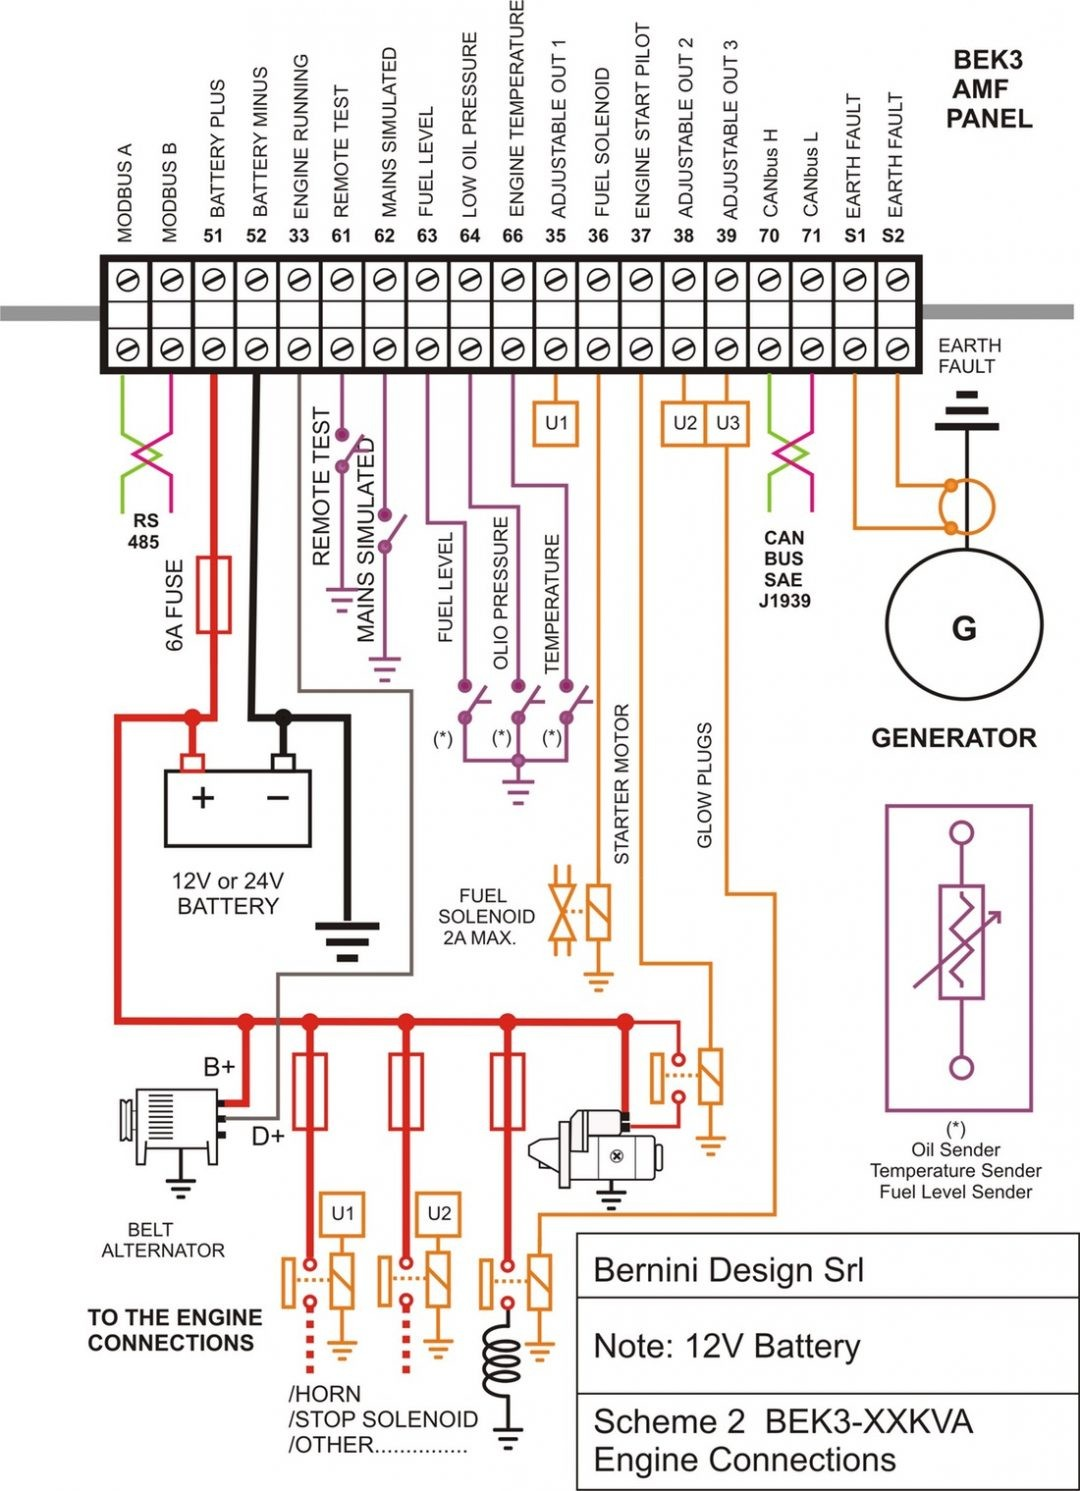 Calamp Gps Wiring Diagram Amf Control Panelcuit Pdf Engine Connections Basic Relaycuit Car Electrical To Switch